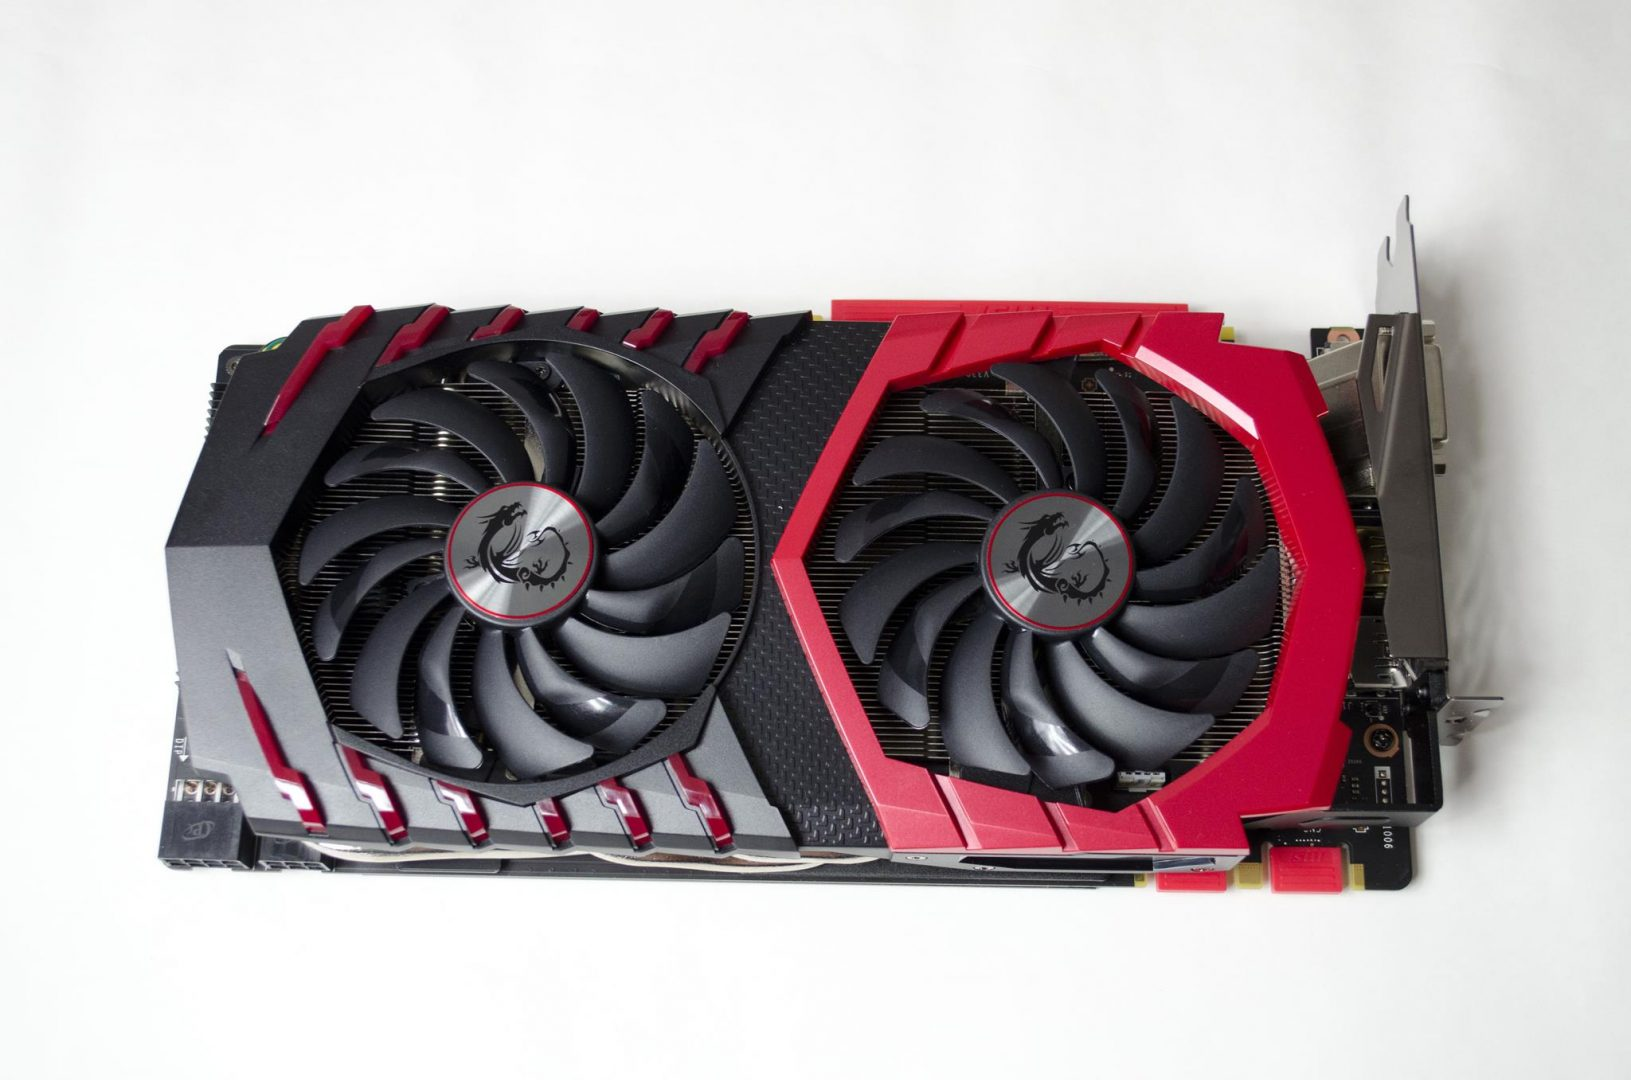 MSI geforce GTX 1070 gaming x 8gb gpu review_6